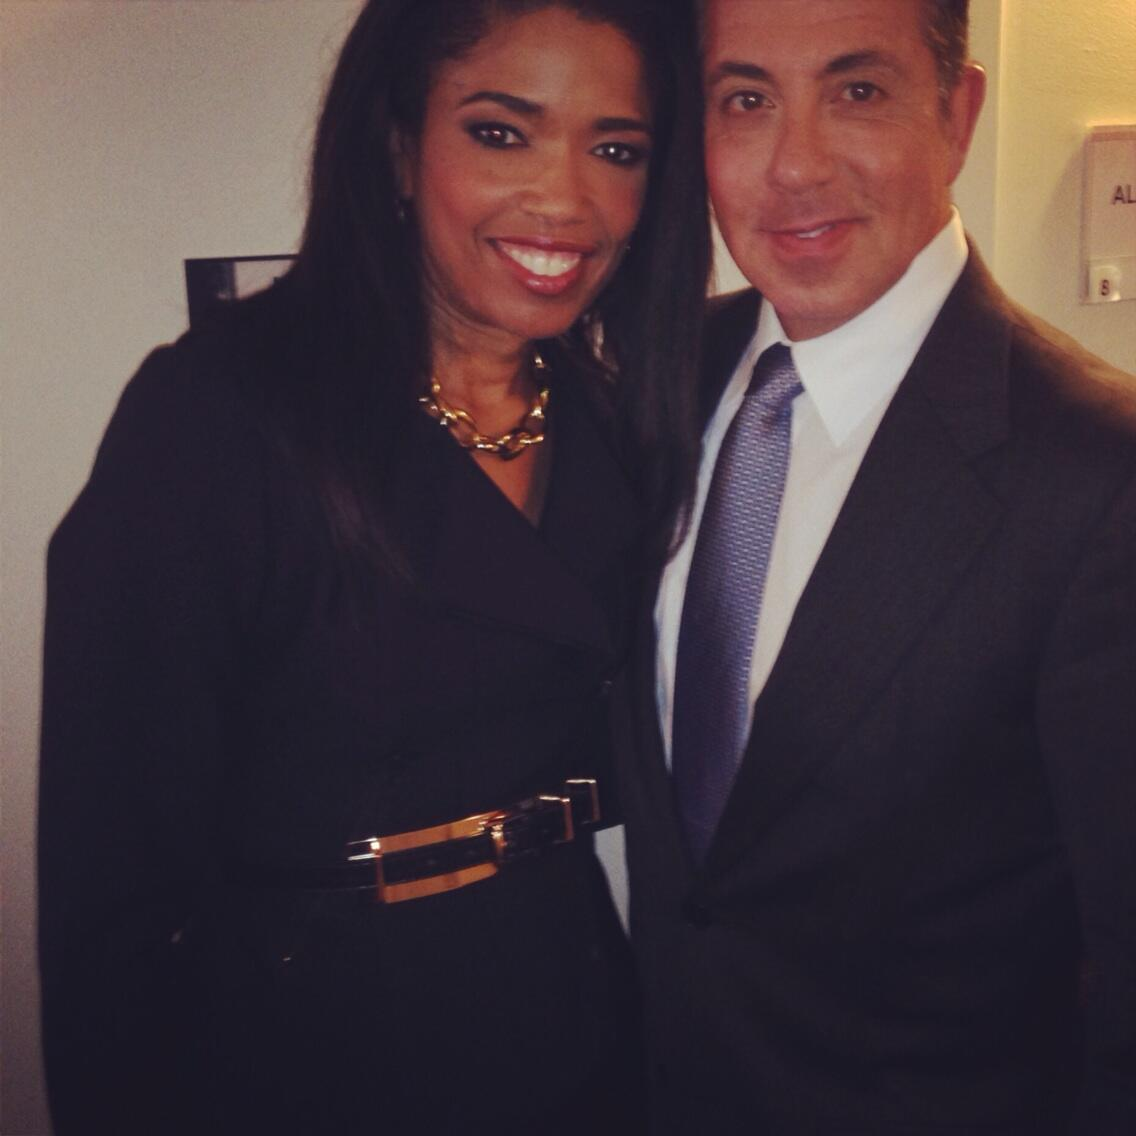 Twitter / ArevaMartin: We put in some work today ...